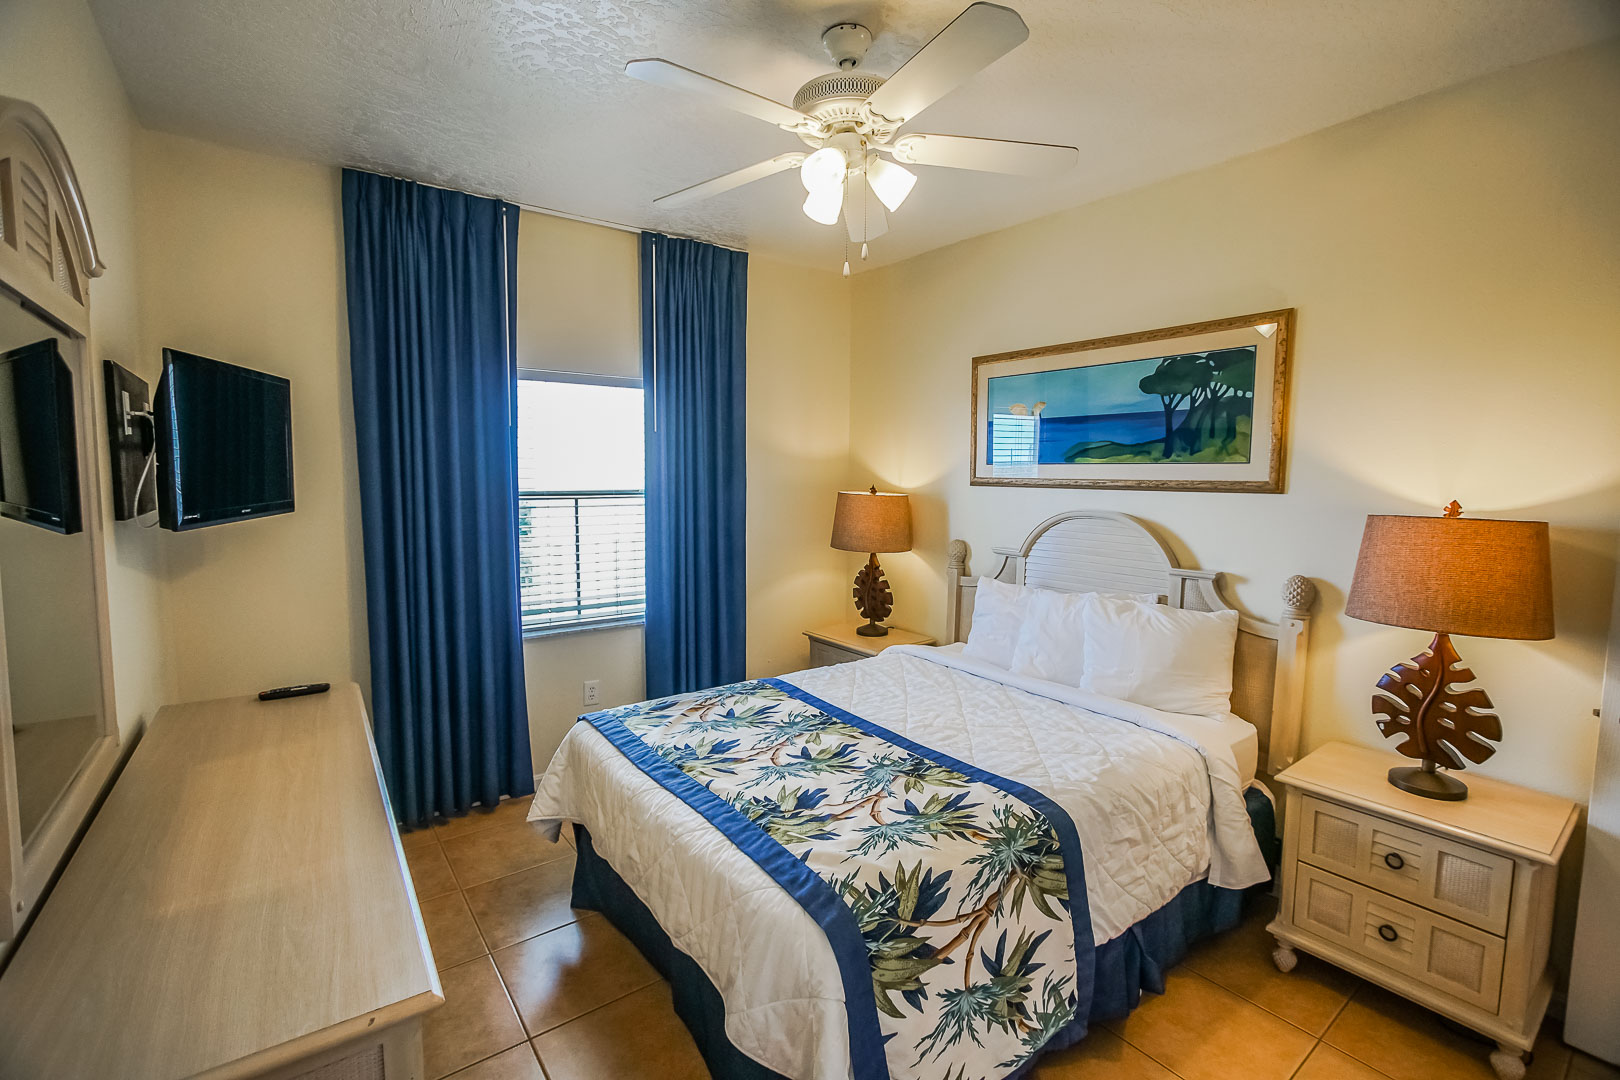 A vibrant master bedroom at VRI's Discovery Beach Resort in Cocoa Beach, Florida.